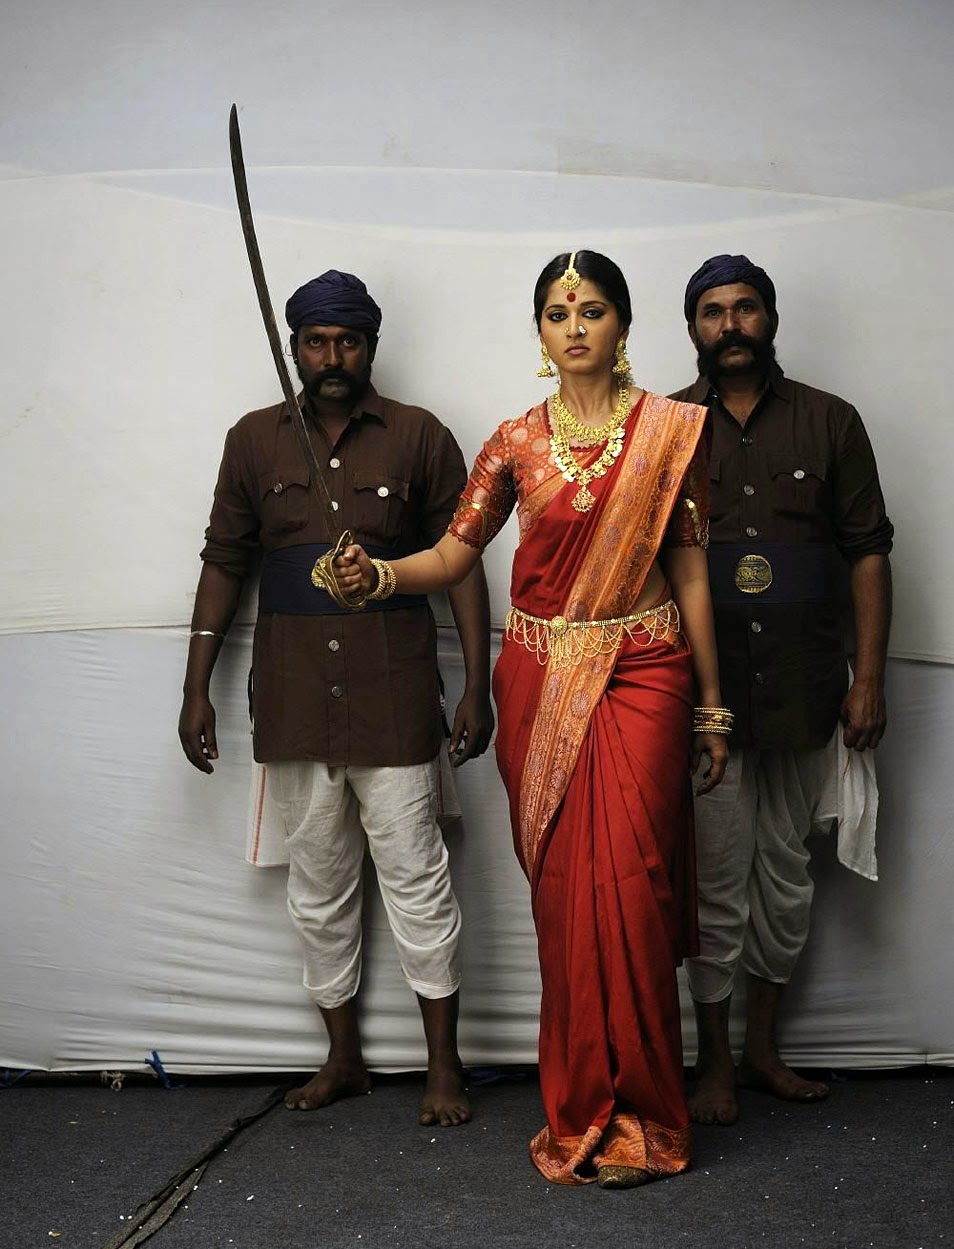 Rudrama devi movie release date